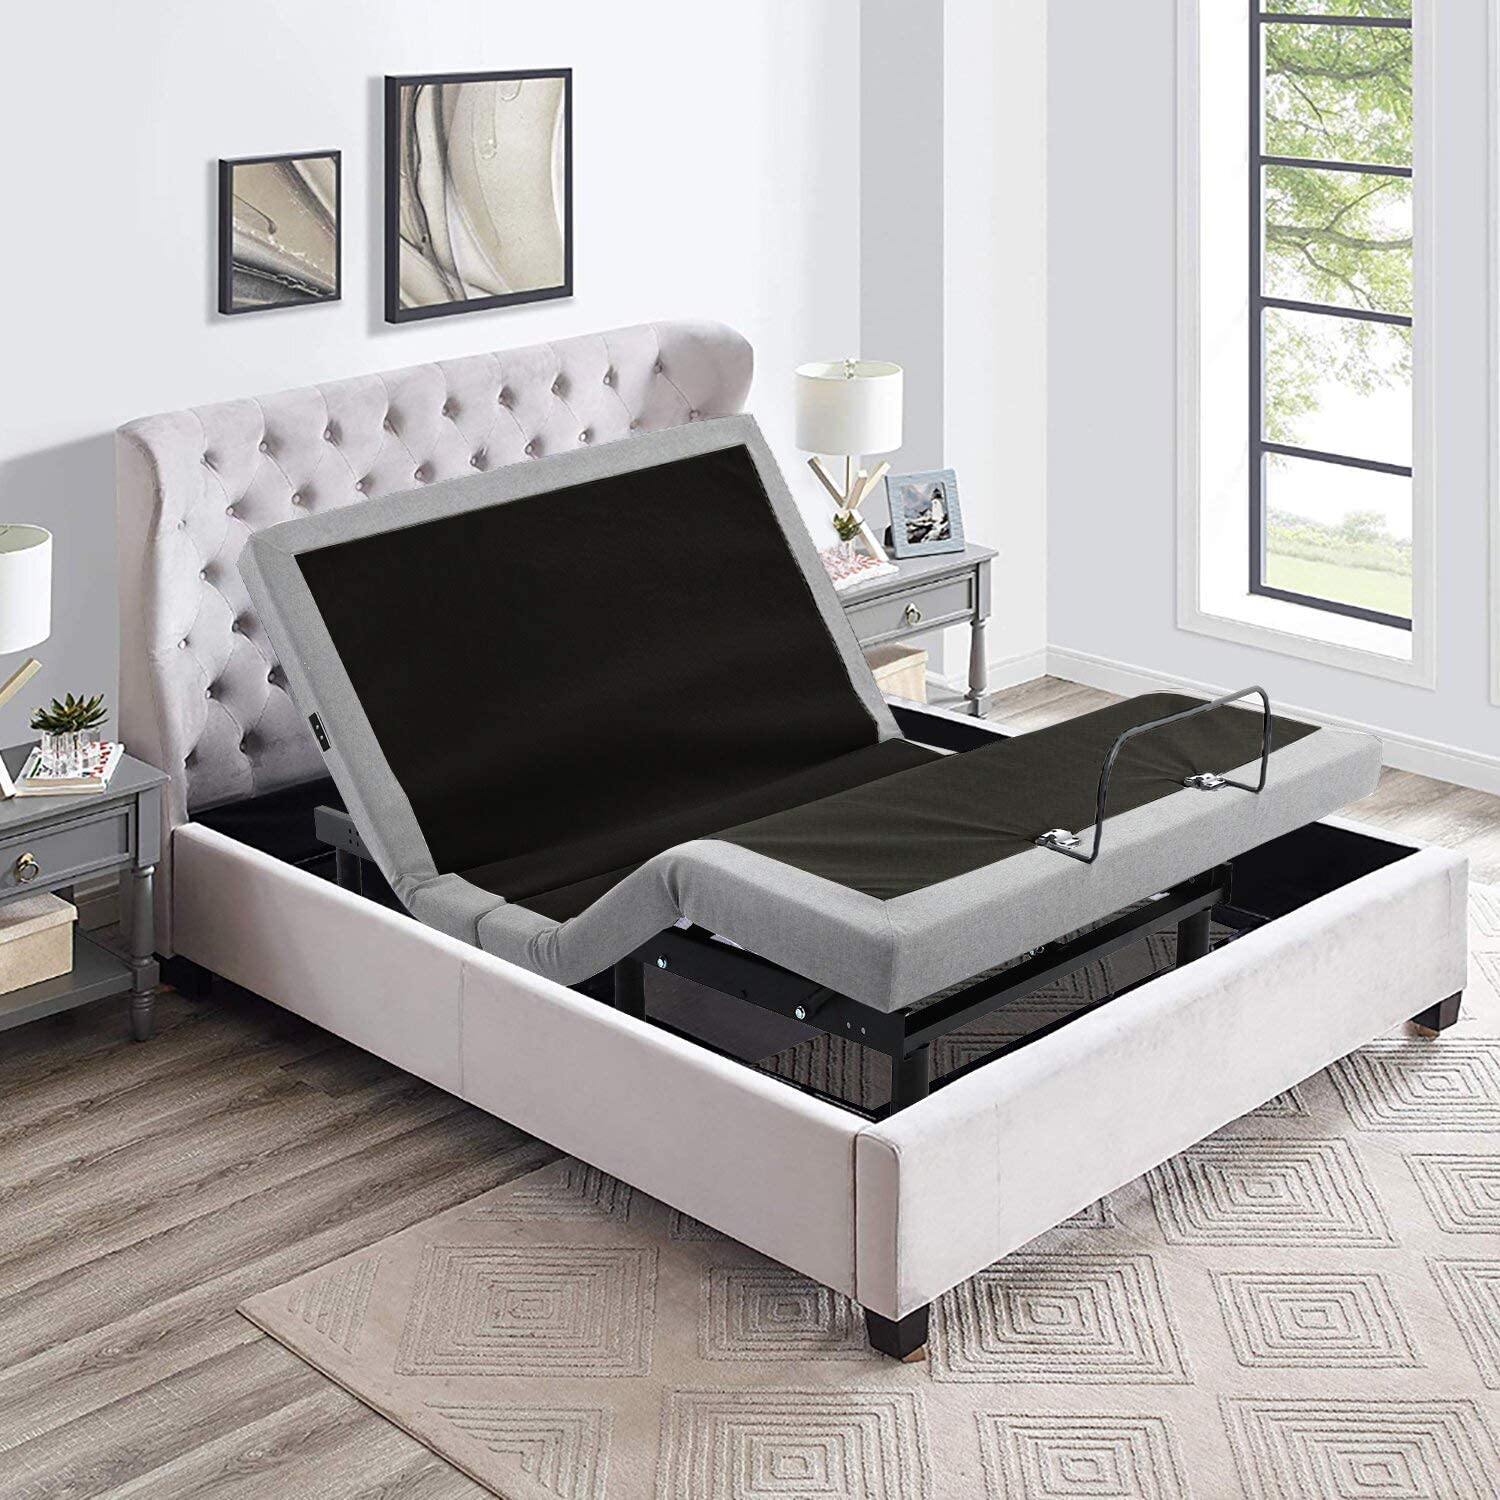 IRVINE HOME COLLECTION King Adjustable Zero Bed Baltimore Mall Base Gravity A Manufacturer regenerated product